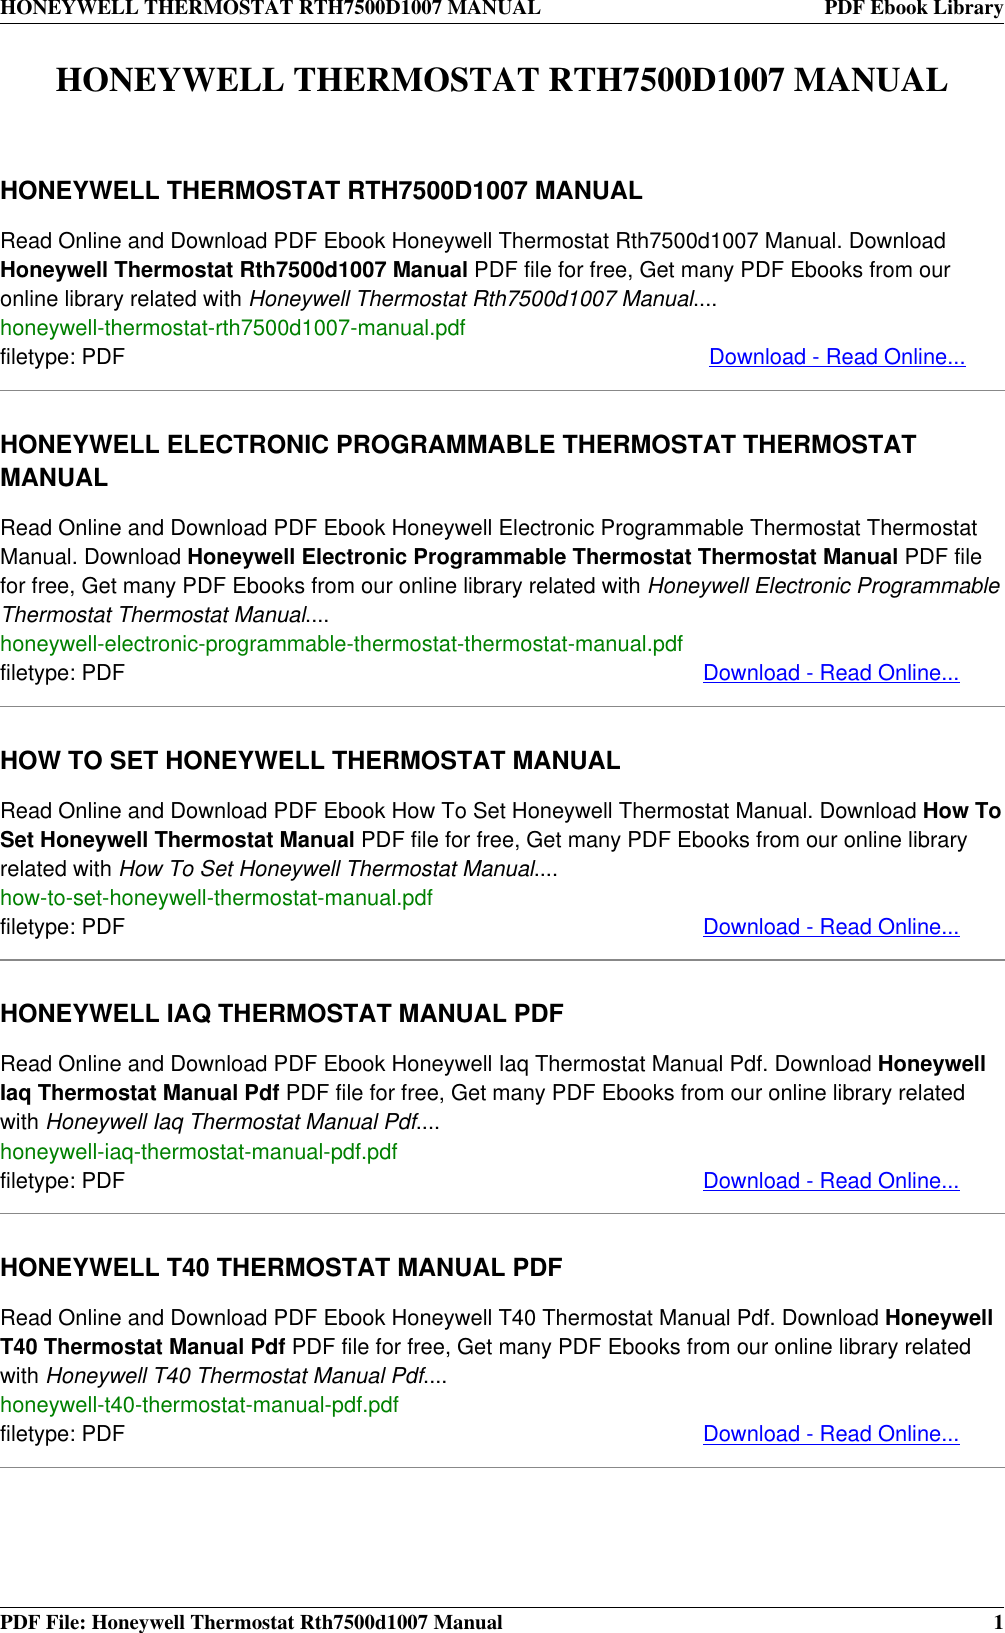 Honeywell thermostat troubleshoot choice image free honeywell programmable thermostat troubleshooting guide gallery honeywell programmable thermostat troubleshooting guide images honeywell thermostat asfbconference2016 Choice Image